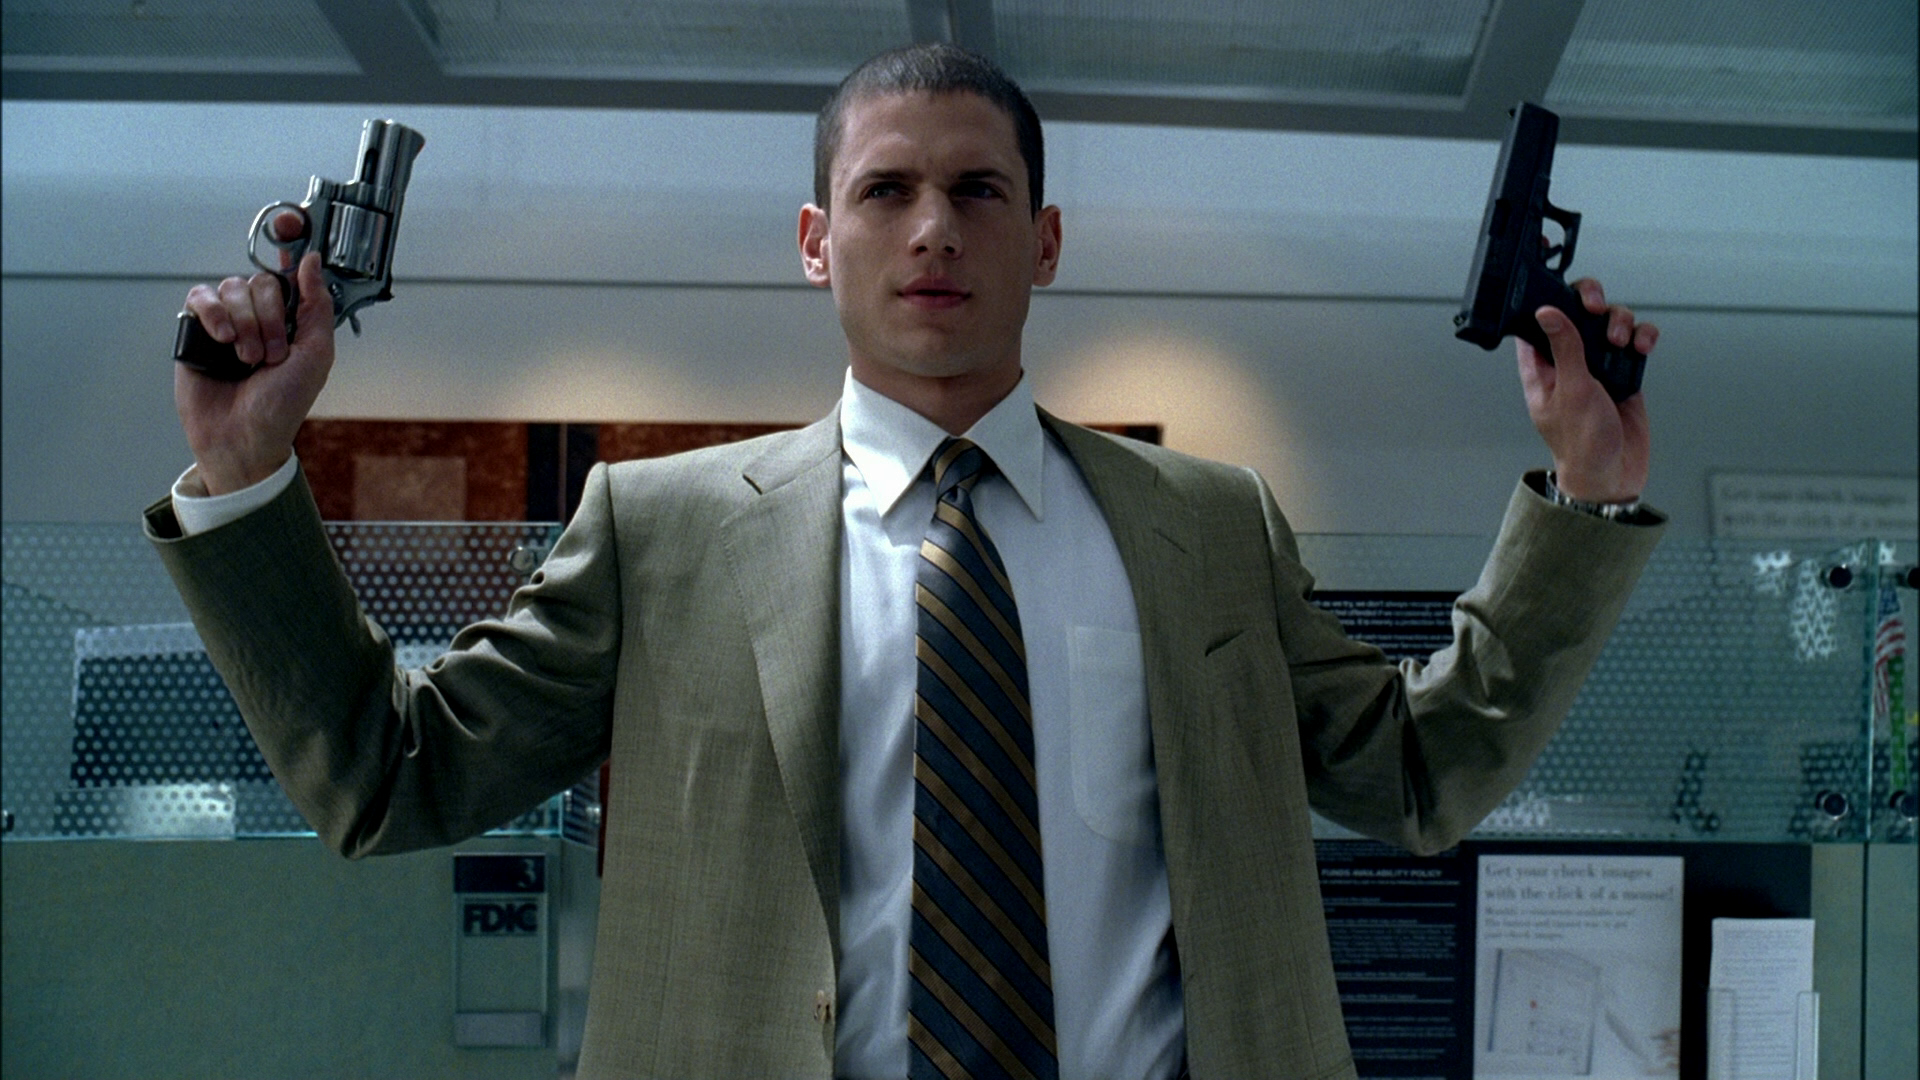 prison-break-wentworth-miller-31258796-1920-1080